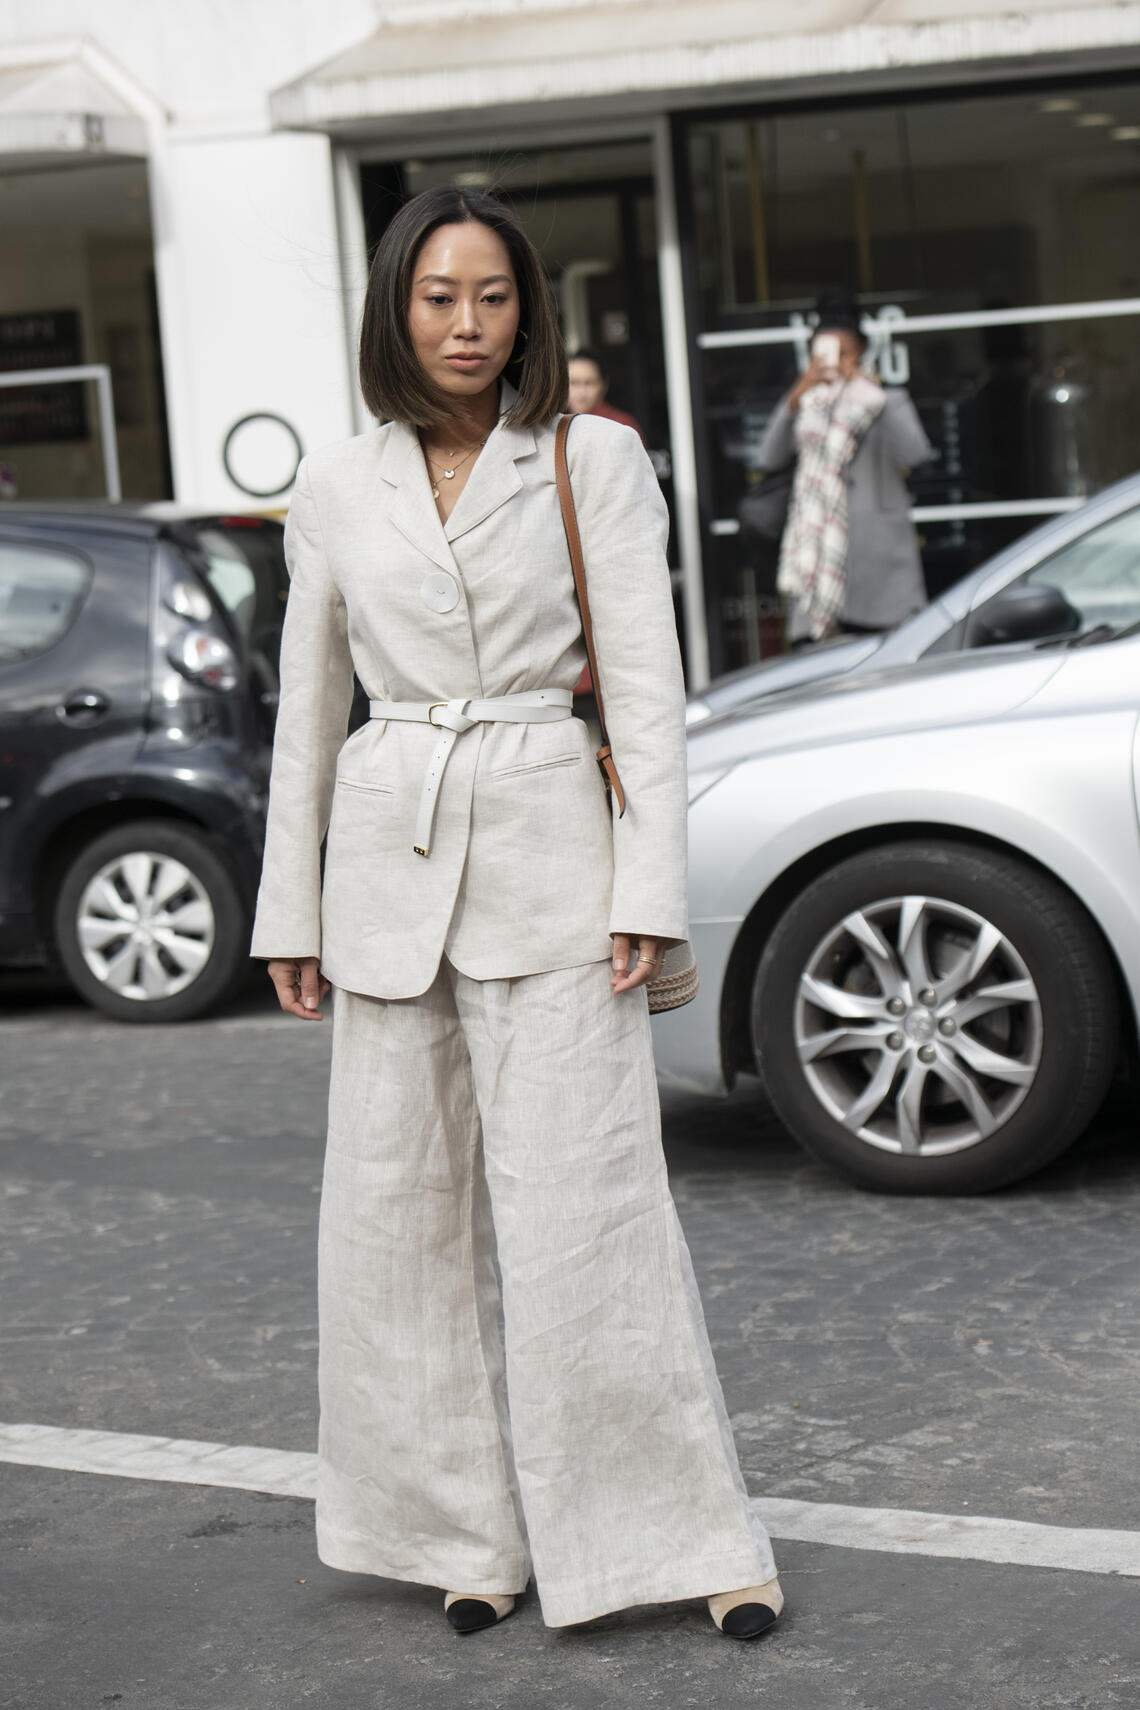 PARIS, FRANCE - MARCH 02: Digital Influencer Aimee Song wears a Loewe bag, linen suit and Chanel shoes on March 02, 2019 in Paris, France. (Photo by Kirstin Sinclair/Getty Images)